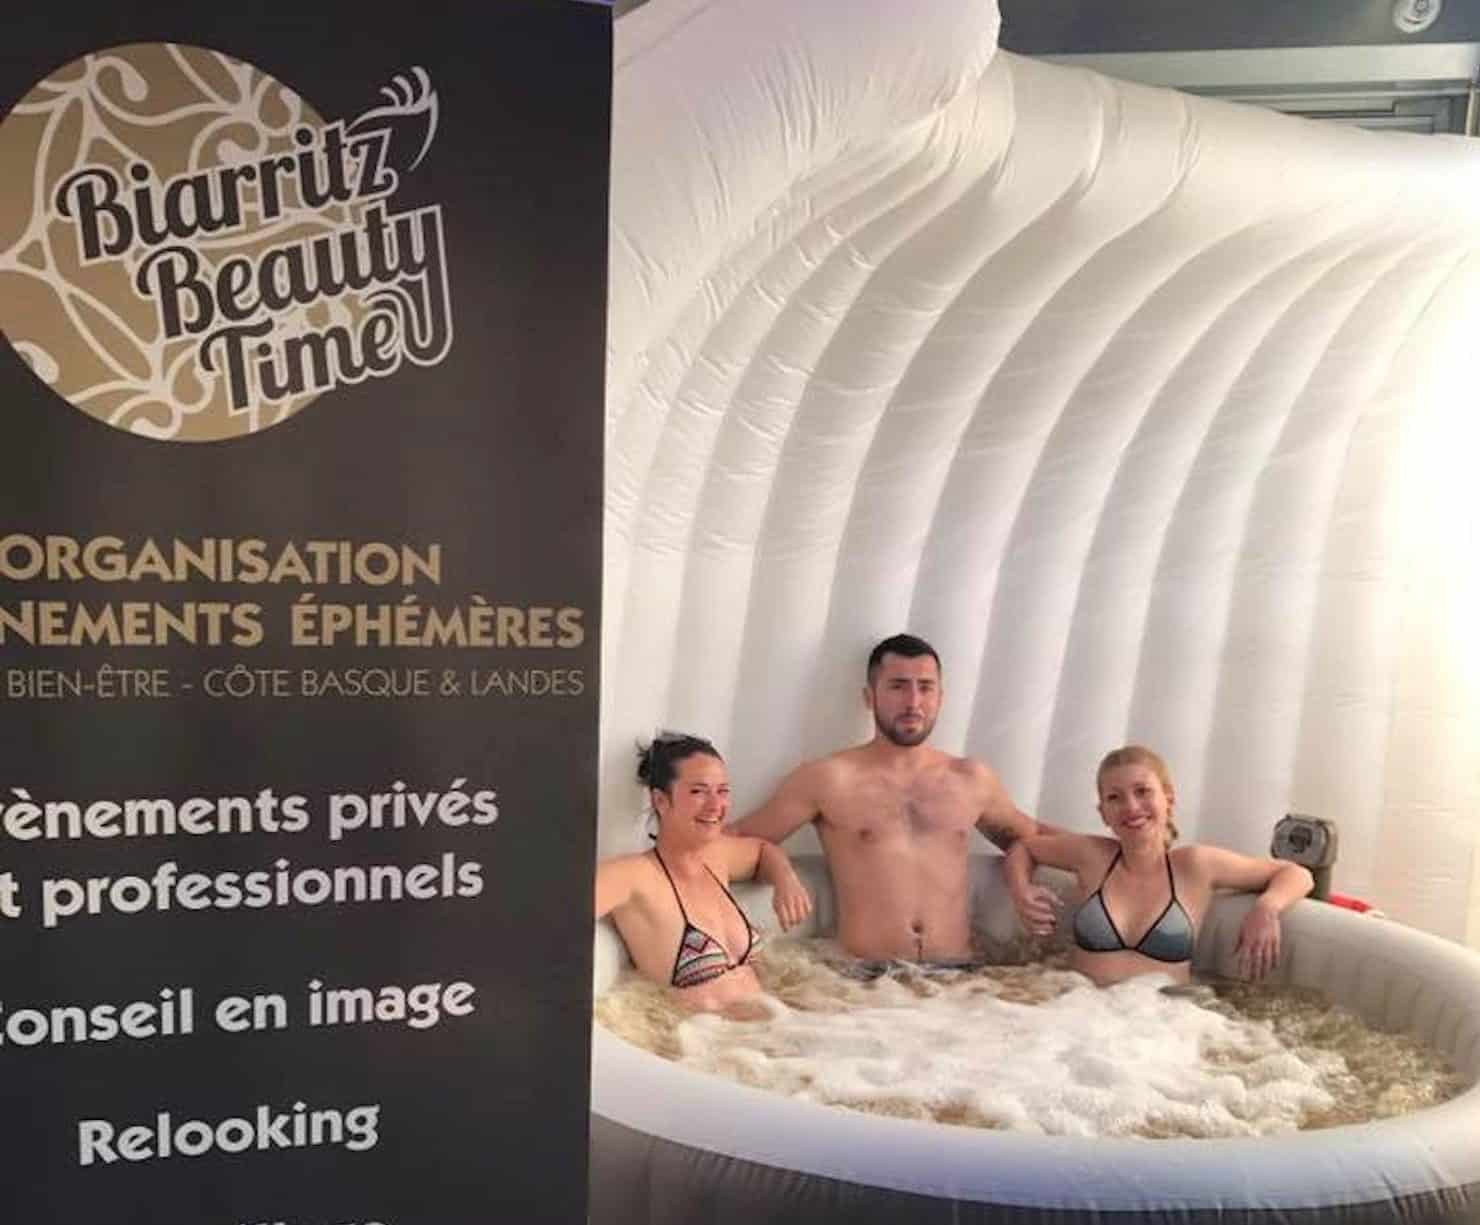 bbf-biarritz-beauty-time-evenement